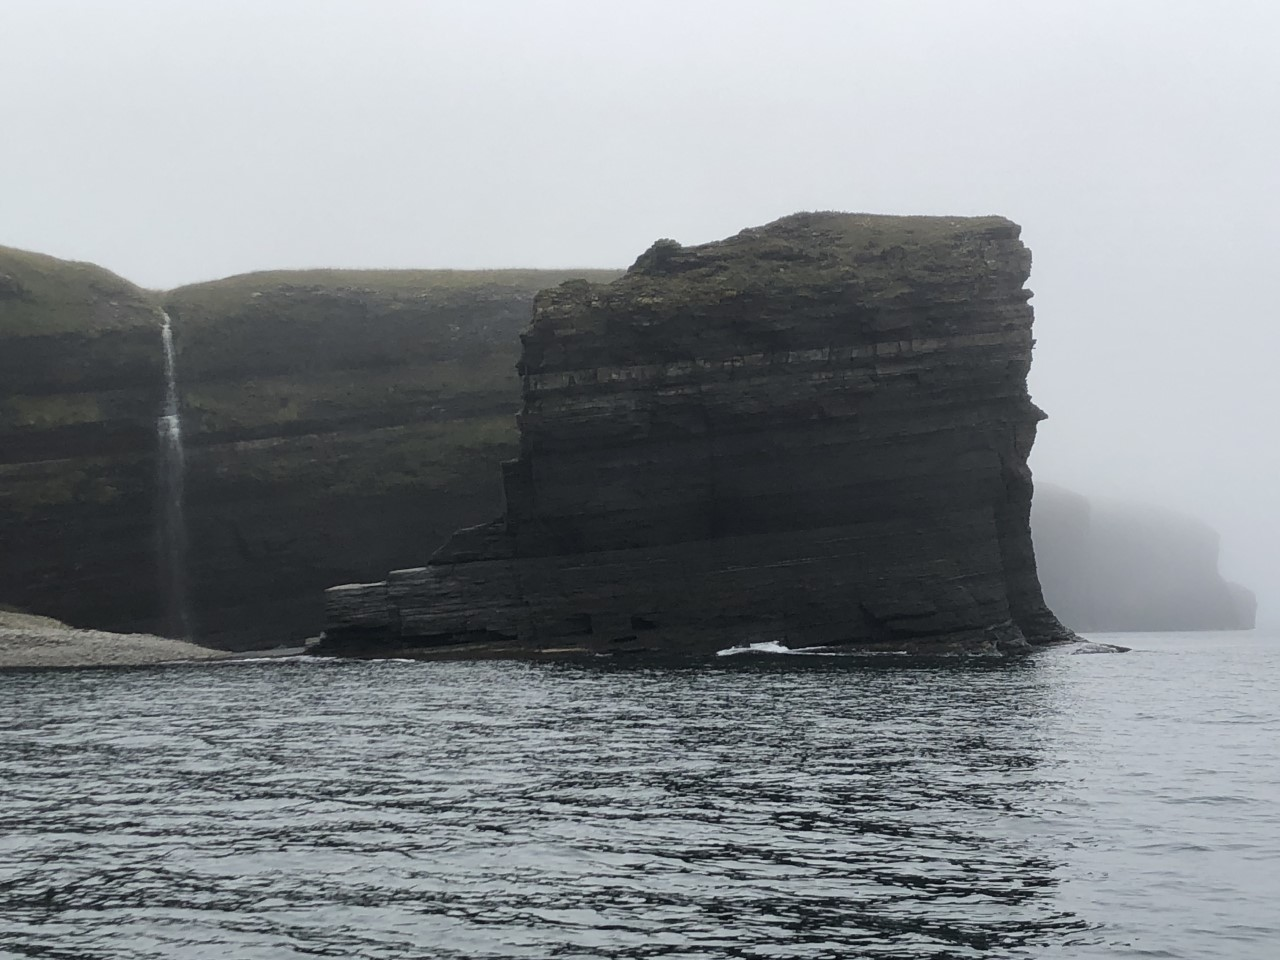 This is part of Bell Island where I went sea kayaking. There were amazing waterfalls and caves!